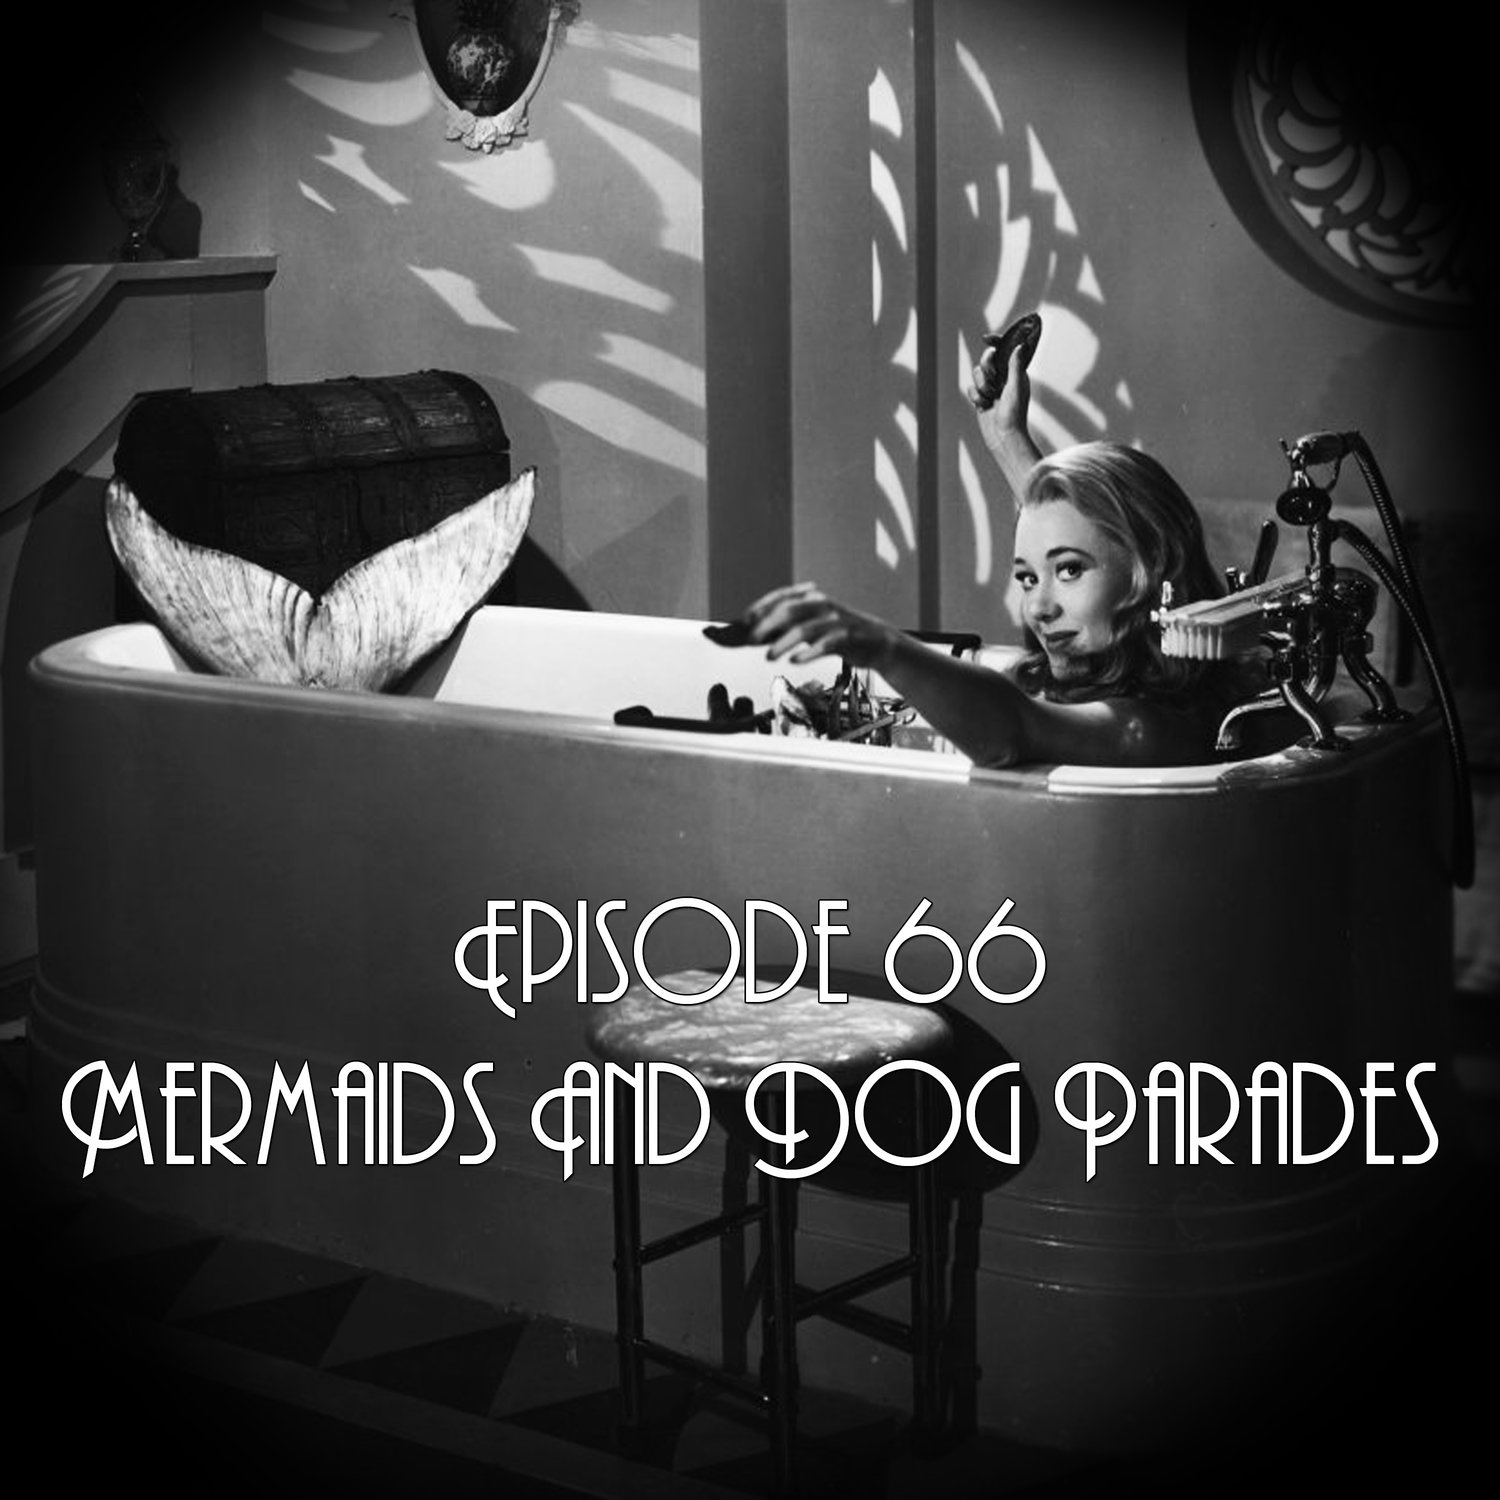 Episode 66: Mermaids And Dog Parades